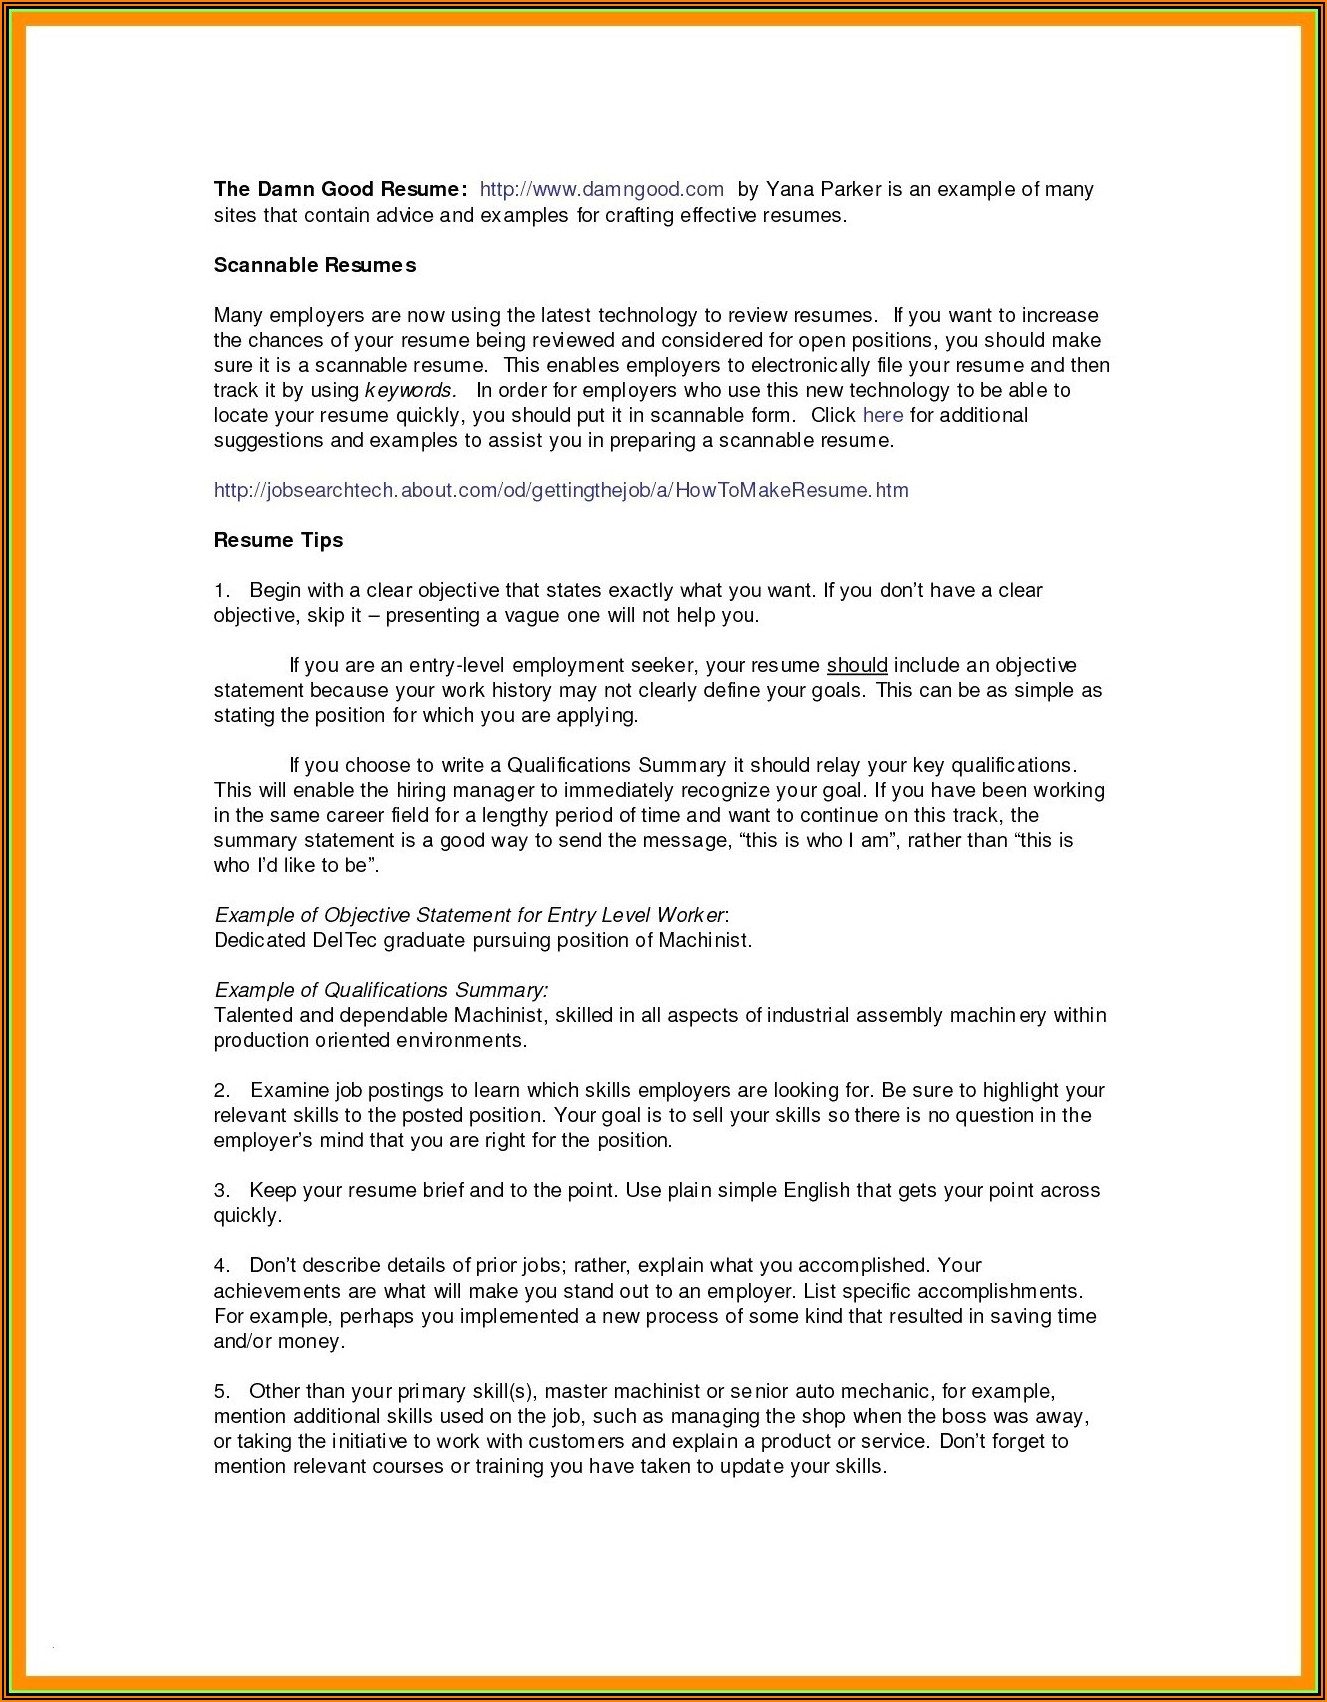 Monster Resume Writing Services India